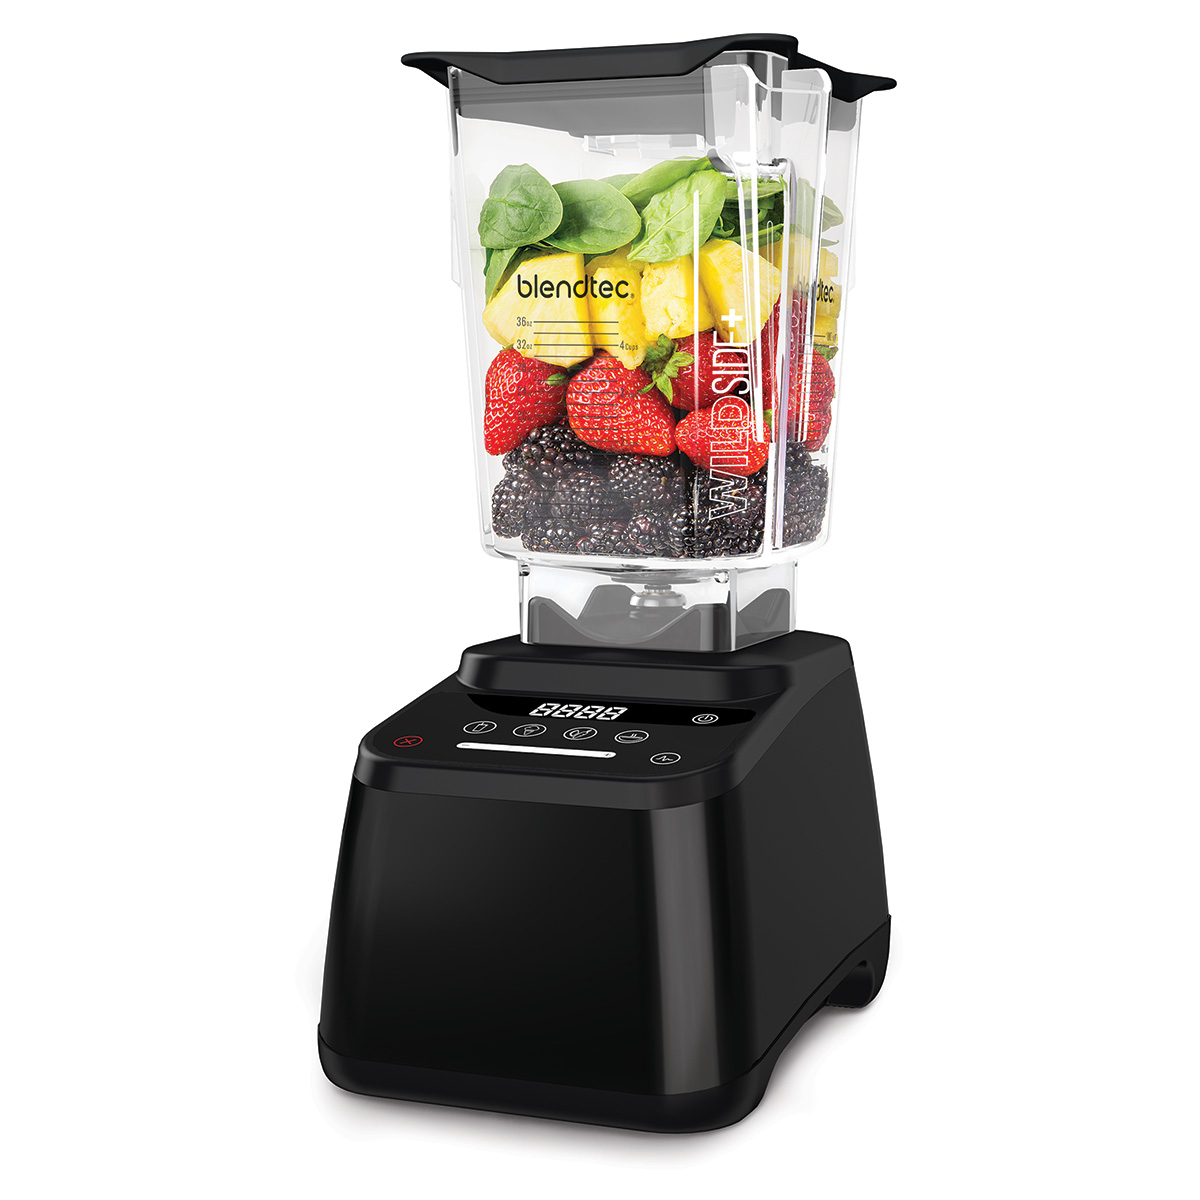 Blendtec powerblender - Designer 625 - Sort